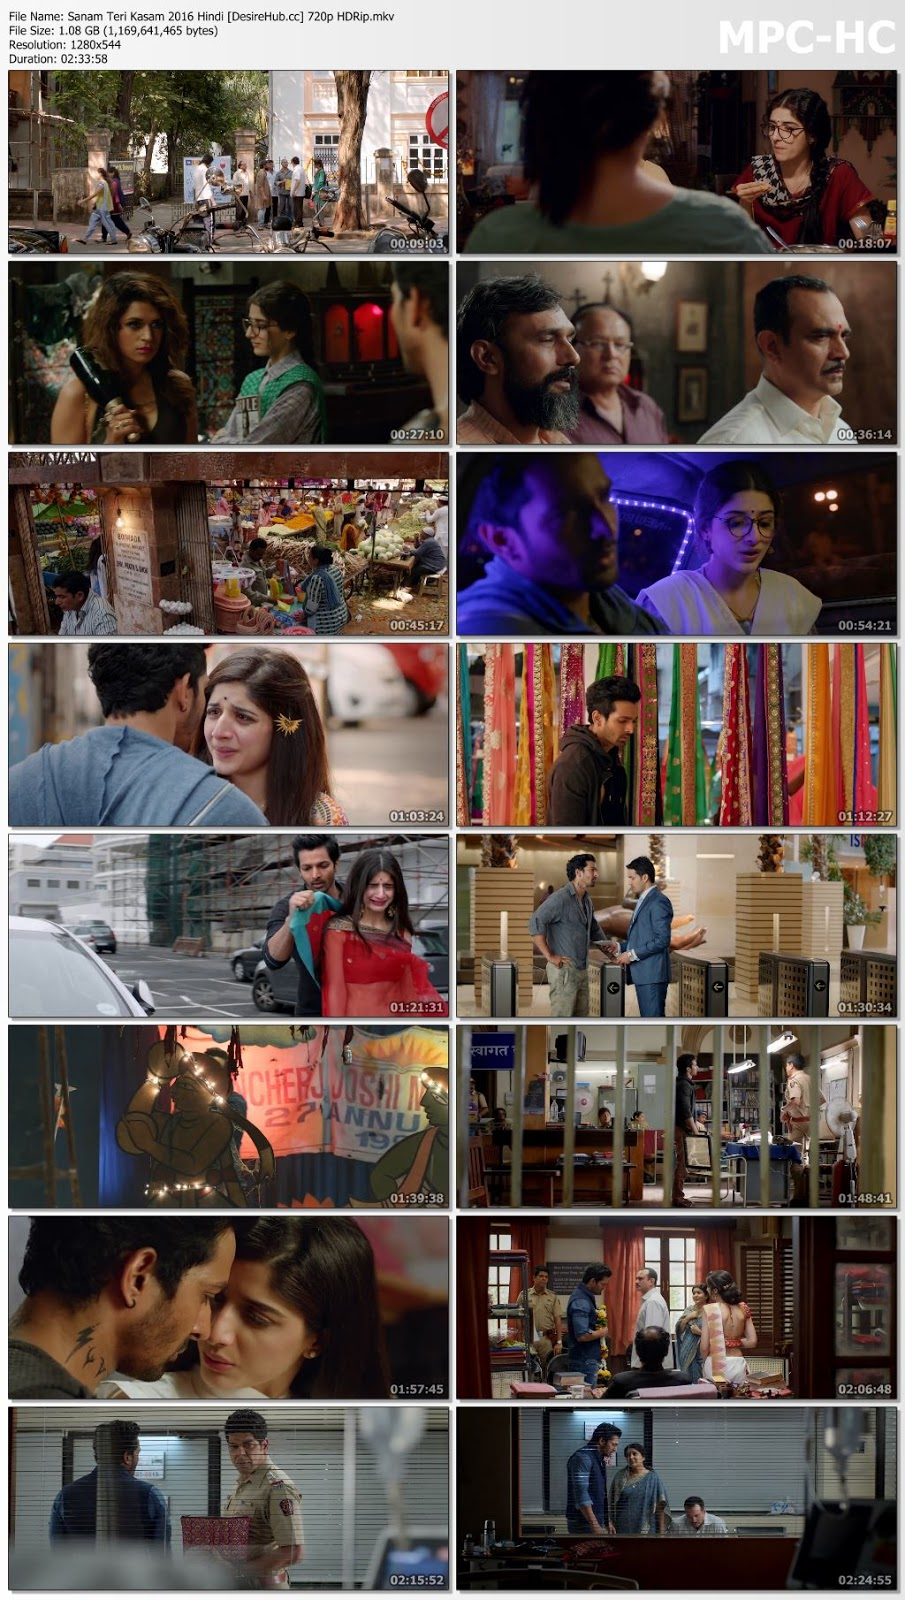 Sanam Teri Kasam 2016 Hindi 720p HDRip 1GB Desirehub